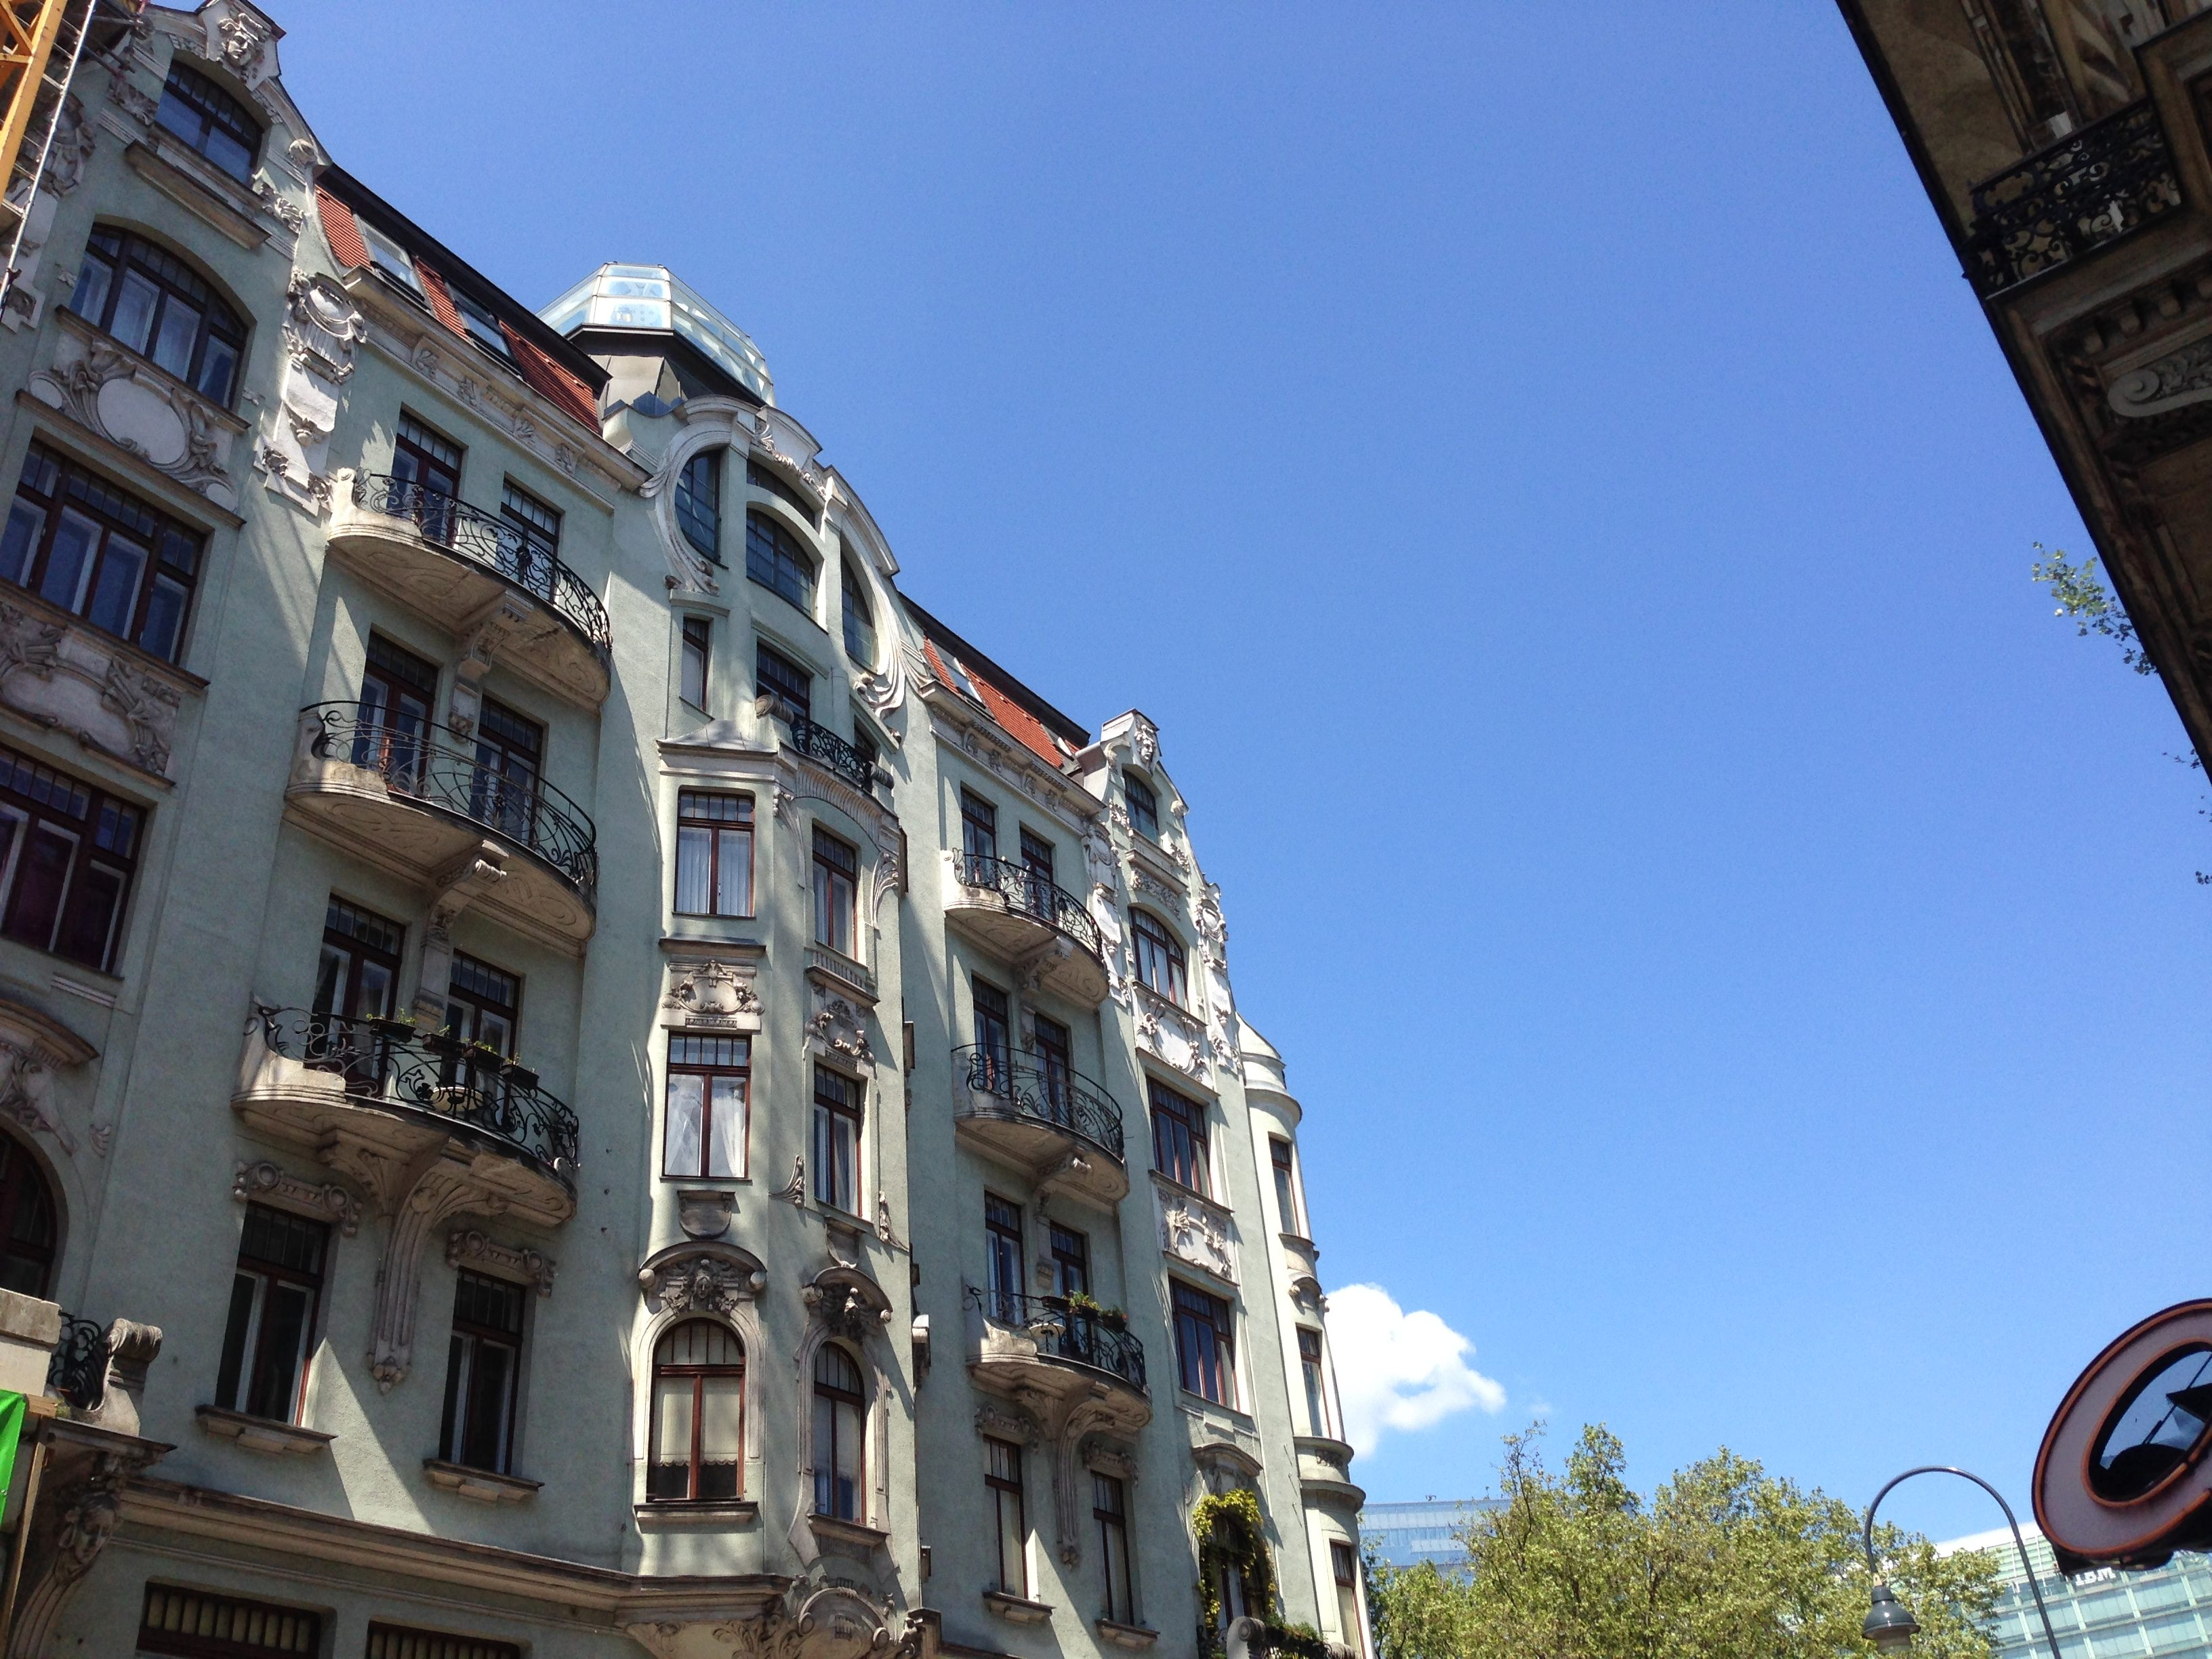 Art Nouveau balconies in Vienna.